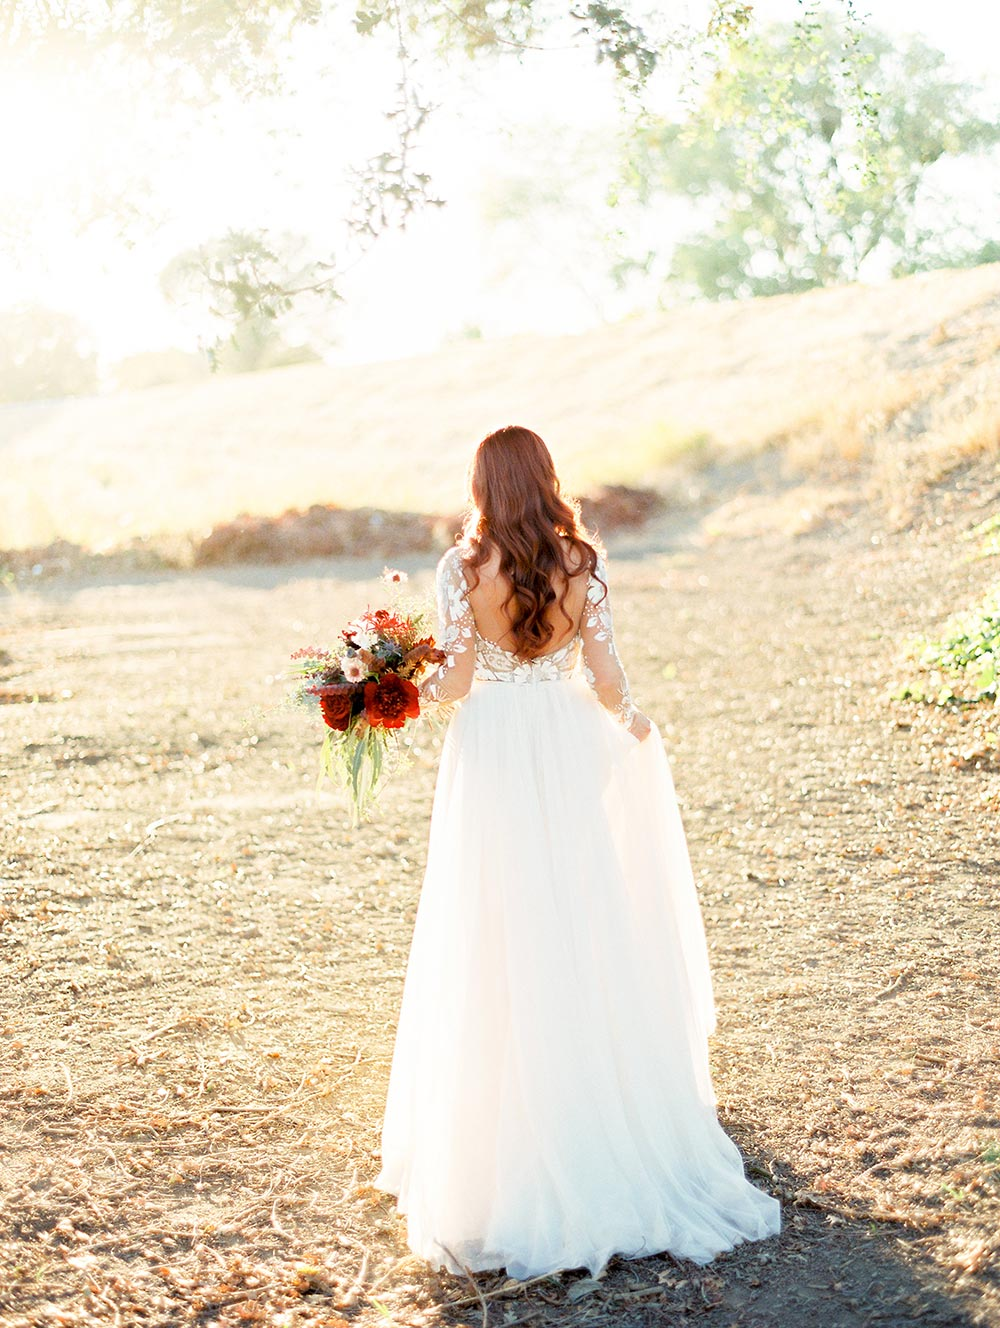 This Brides Hayley Paige Gown Is To Die For #californiavineyardwedding #sacramentobrides #hayleypaigeweddingdresses